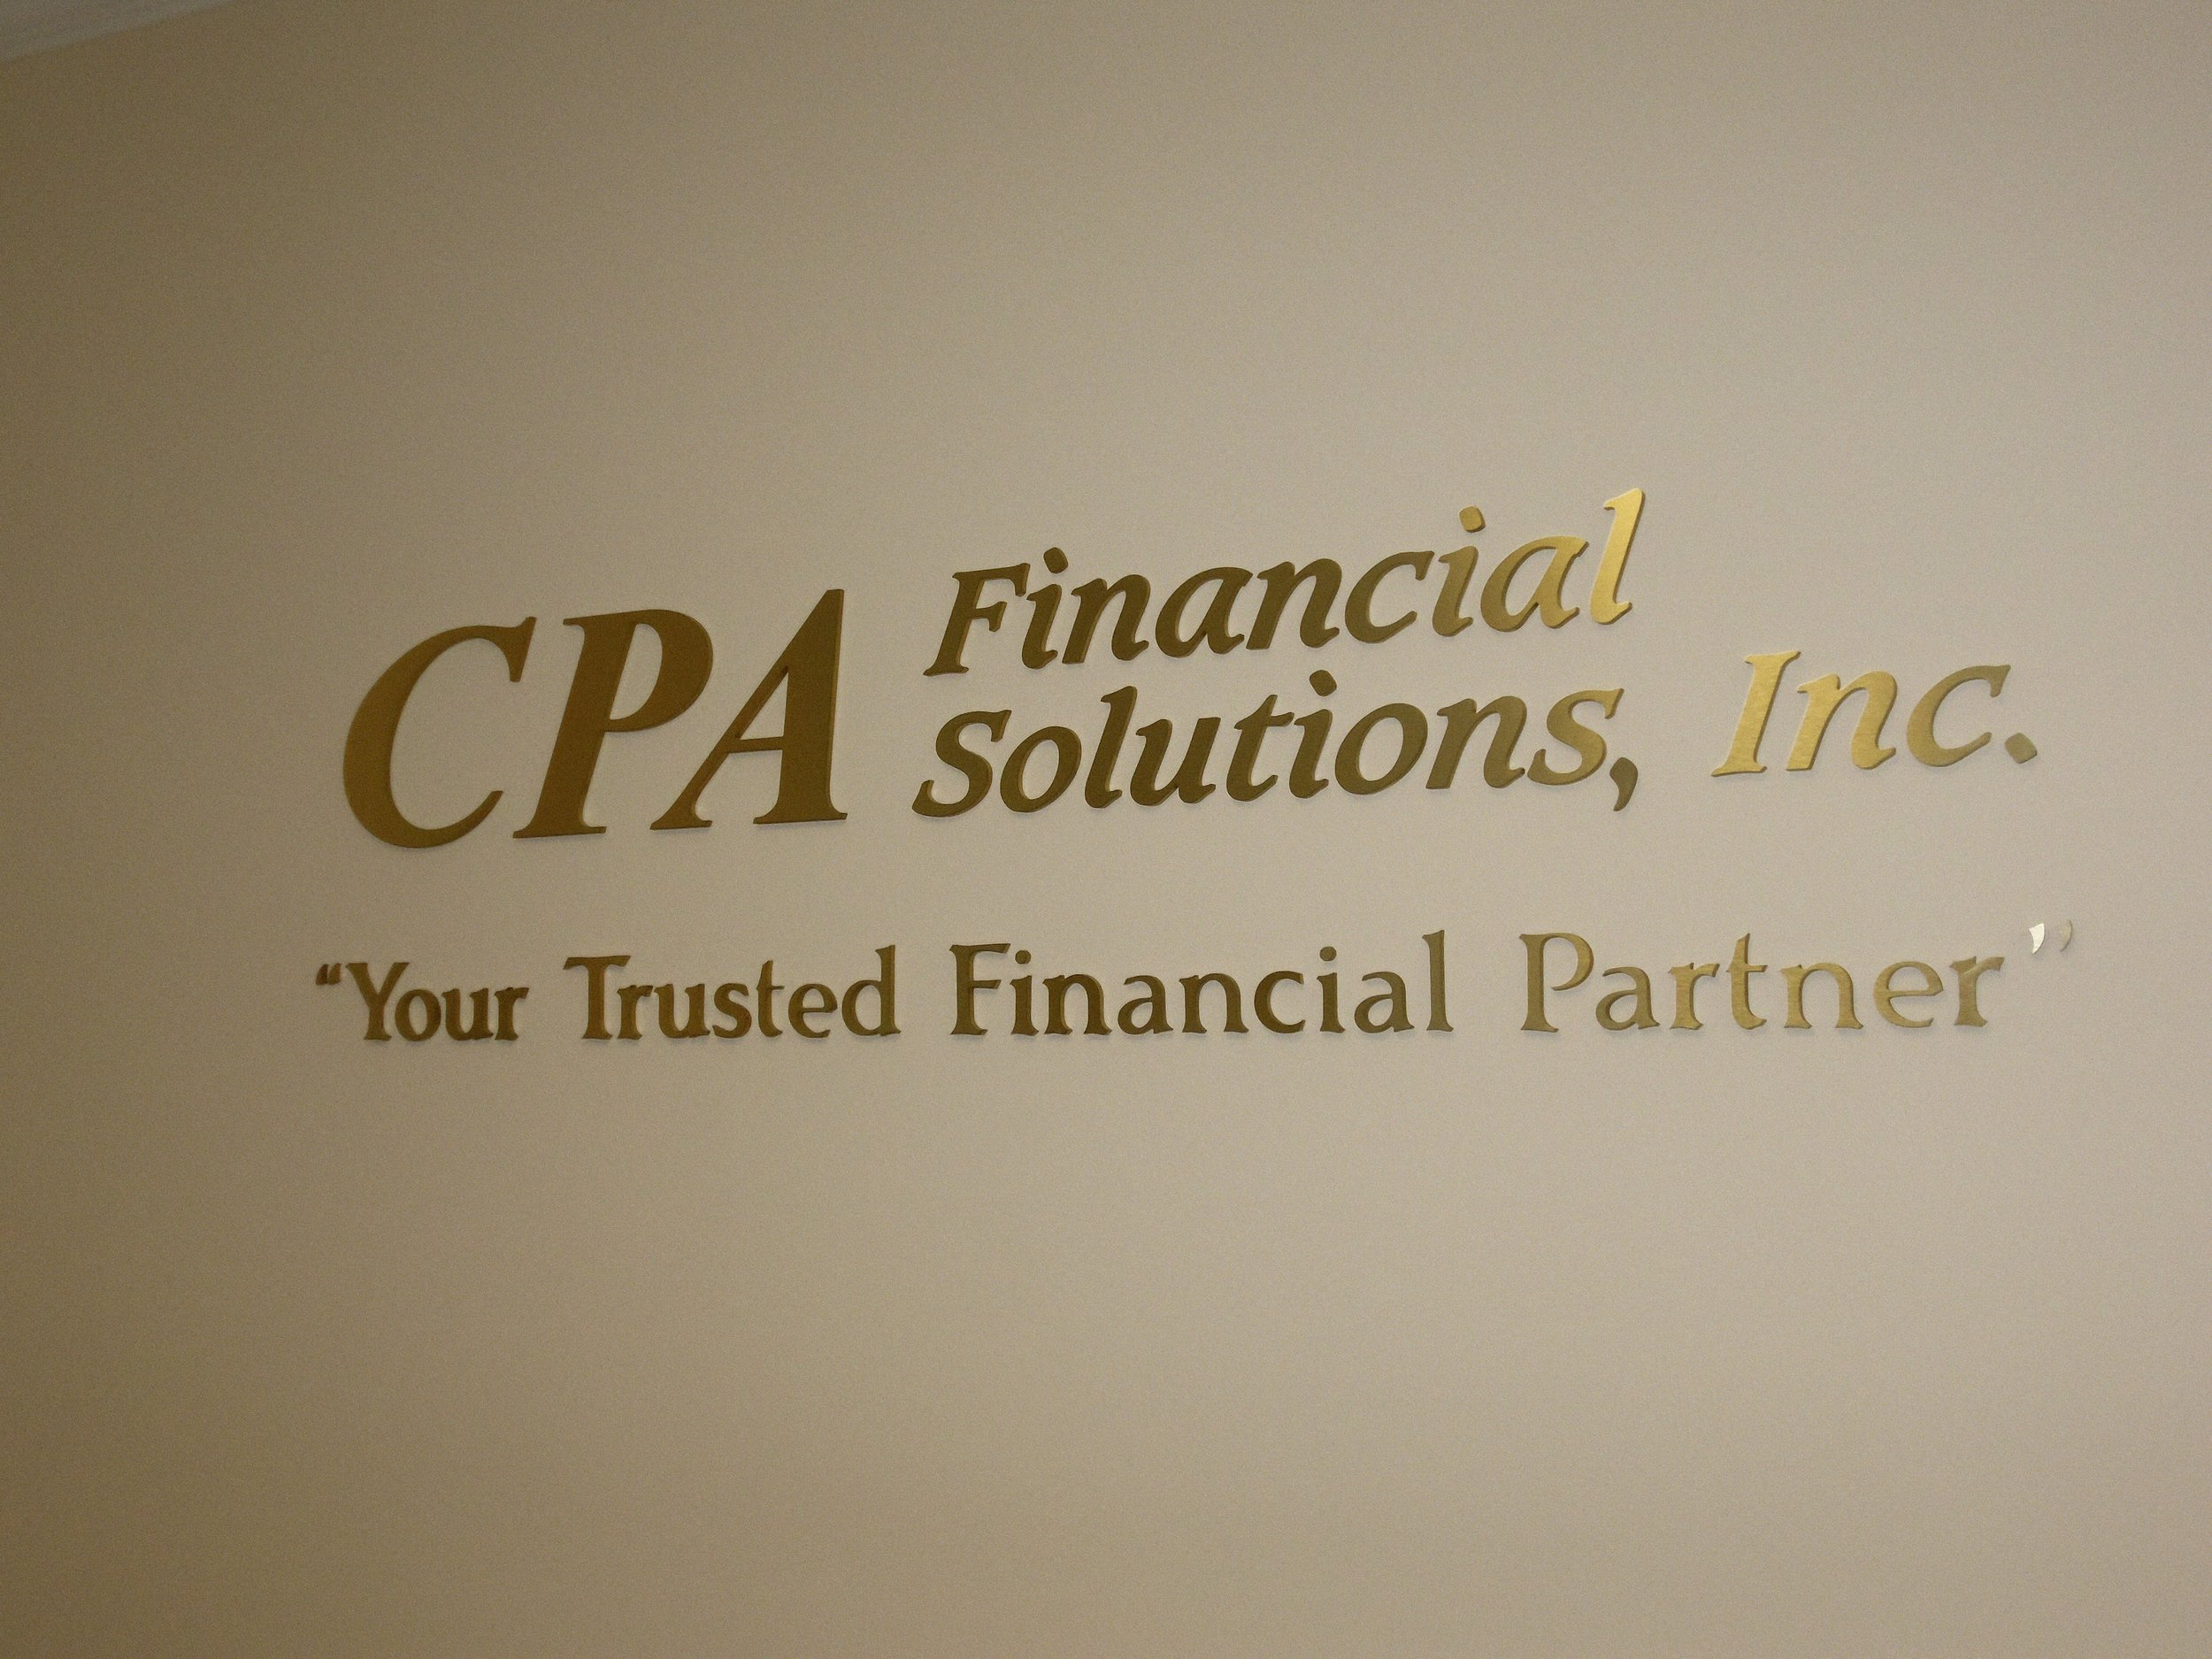 CPA Financial Solutions.JPG